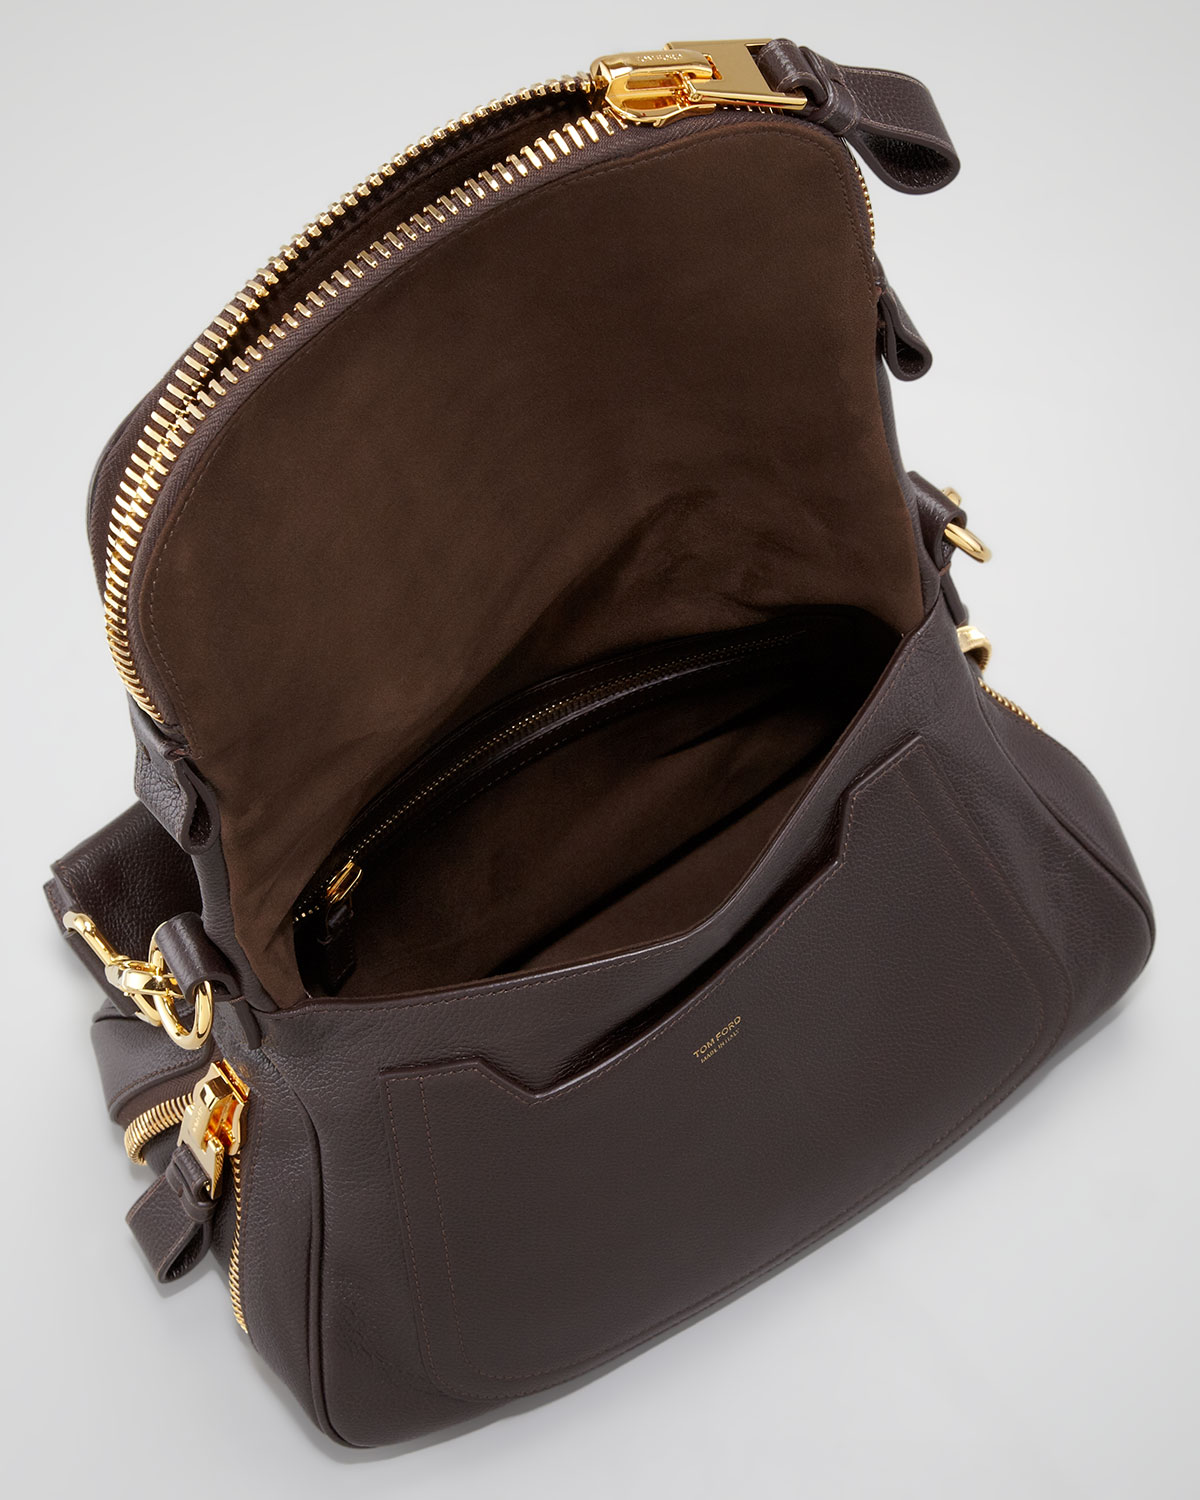 Tom ford Jennifer Medium Zip Strap Shoulder Bag Dark Brown in ...